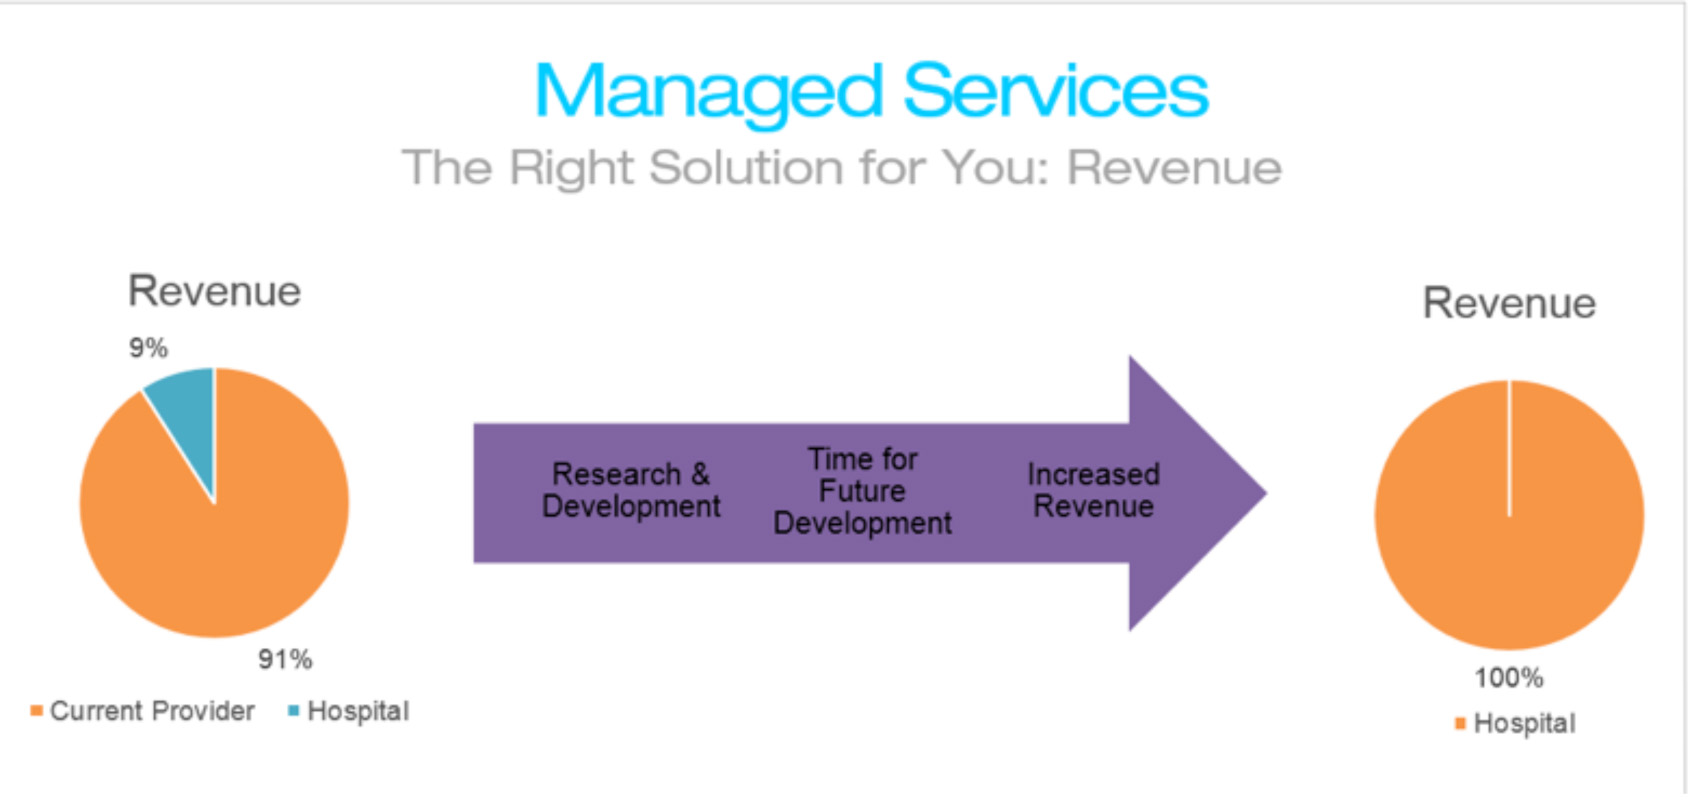 hospital managed services provider for patient entertainment legacy systems